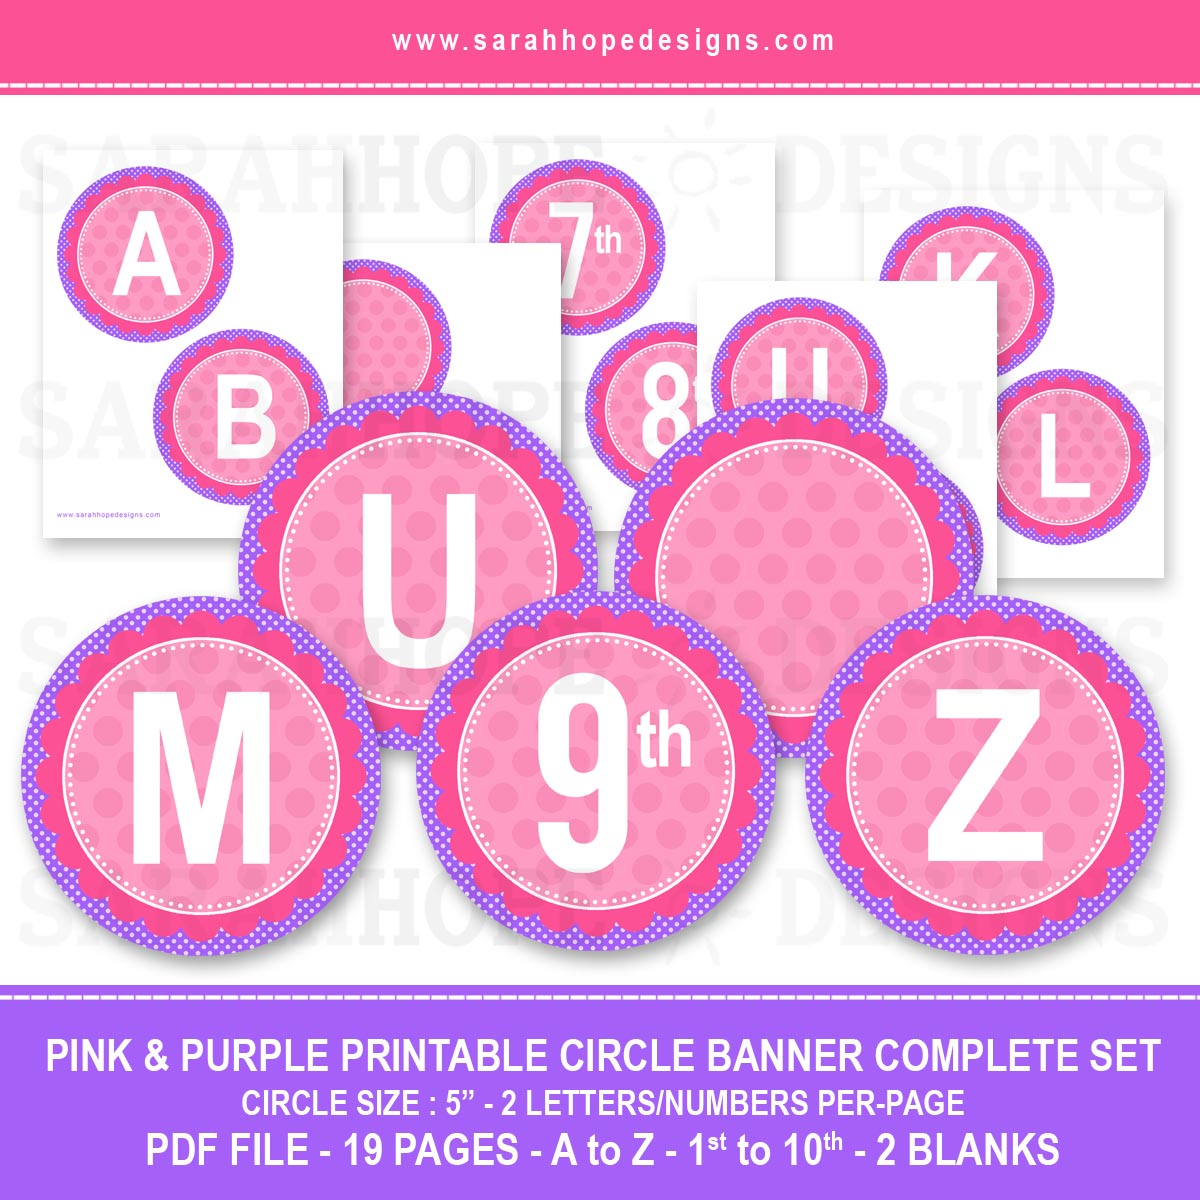 photograph relating to Printable Letters Banner identify Spell Out Every thing With Those Totally free Alphabet Circle Banners